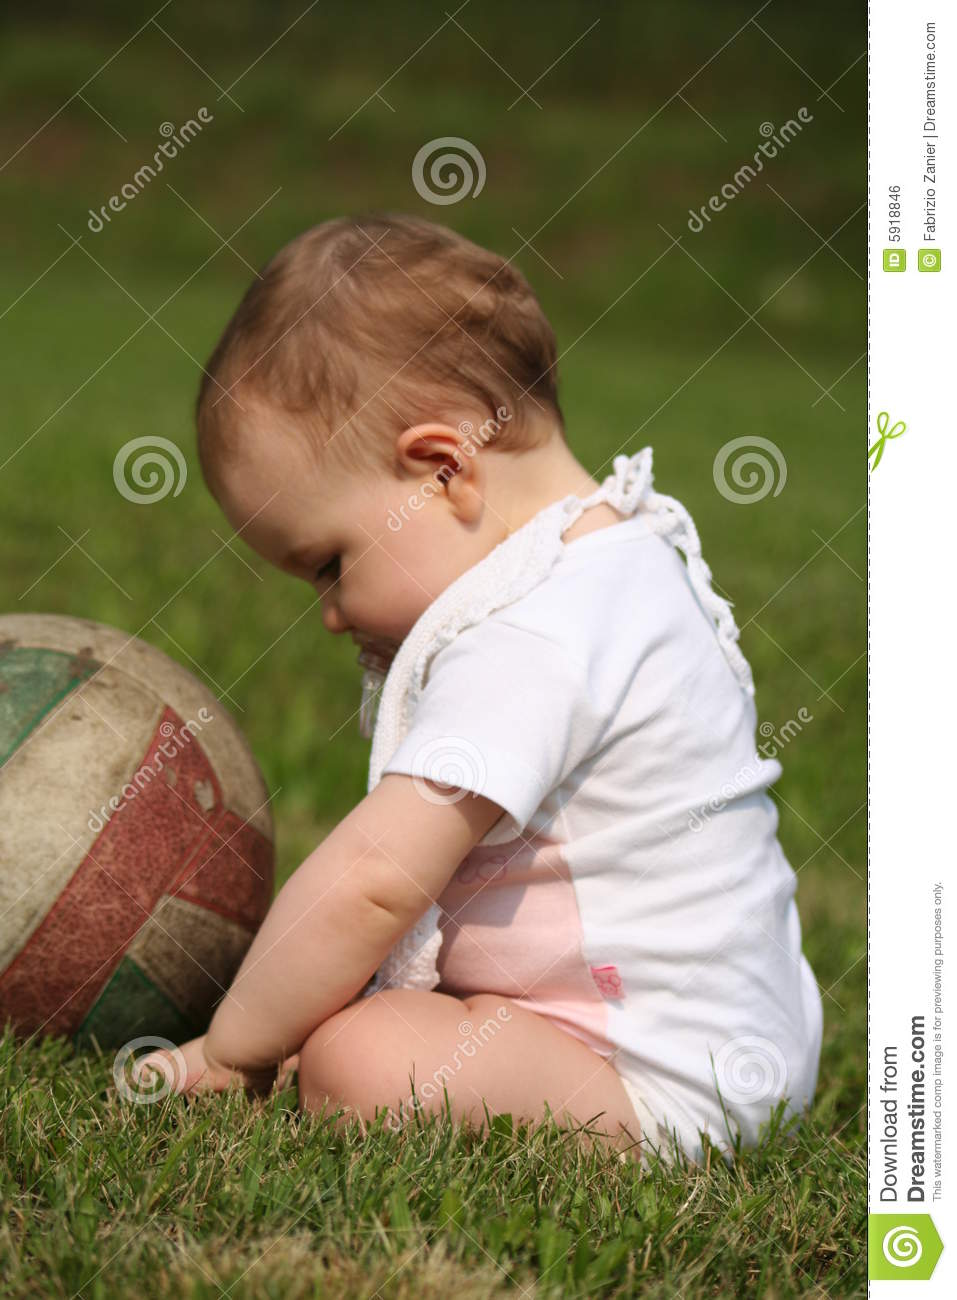 Baby Girl Sit At Grass Royalty Free Stock Image